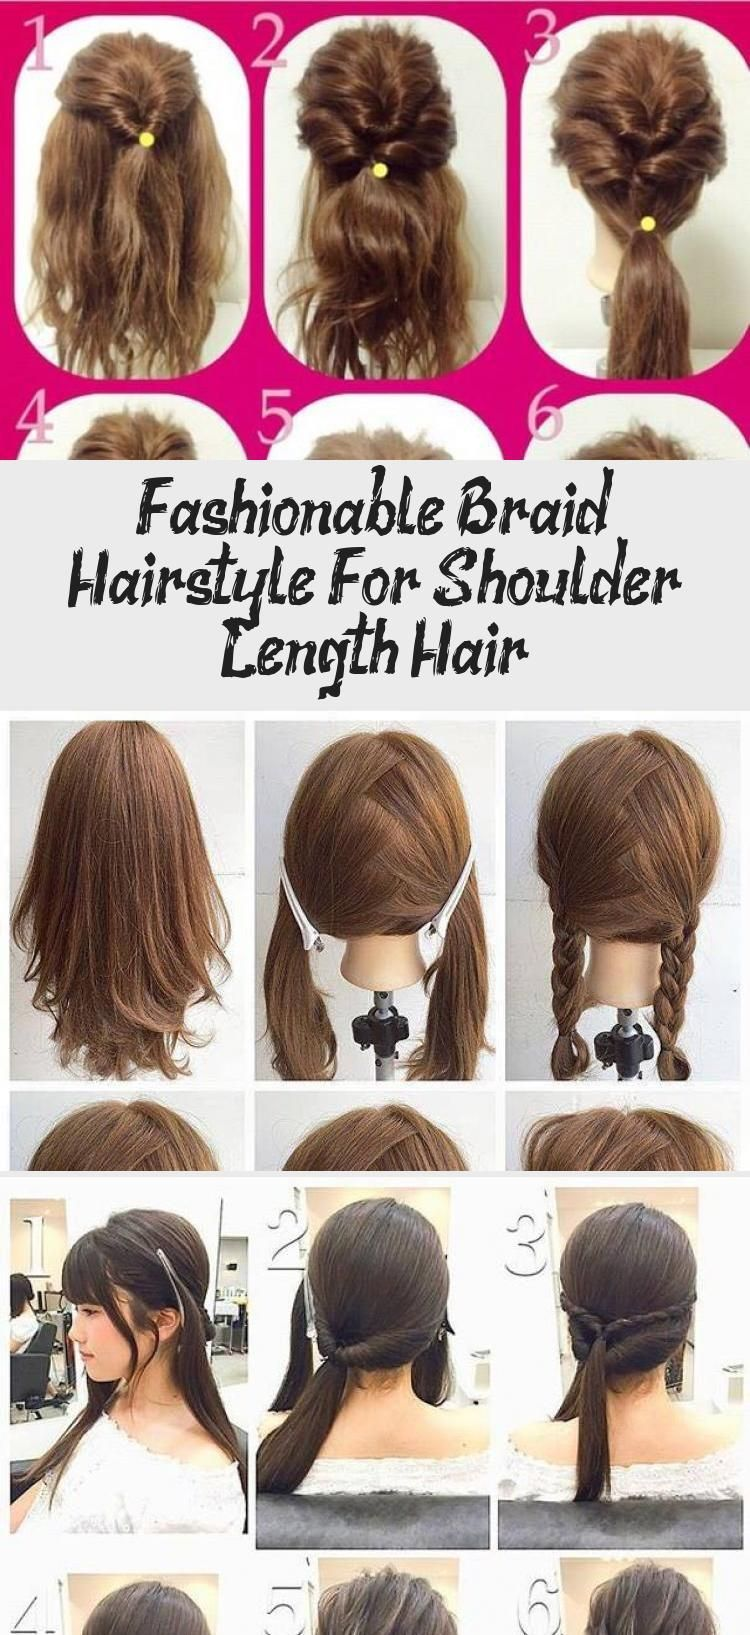 Fashionable Braid Hairstyle For Shoulder Length Hair Pinuphairtutorial Hairtut Braid Fashionable Ha In 2020 Shoulder Length Hair Hair Lengths Braided Hairstyles